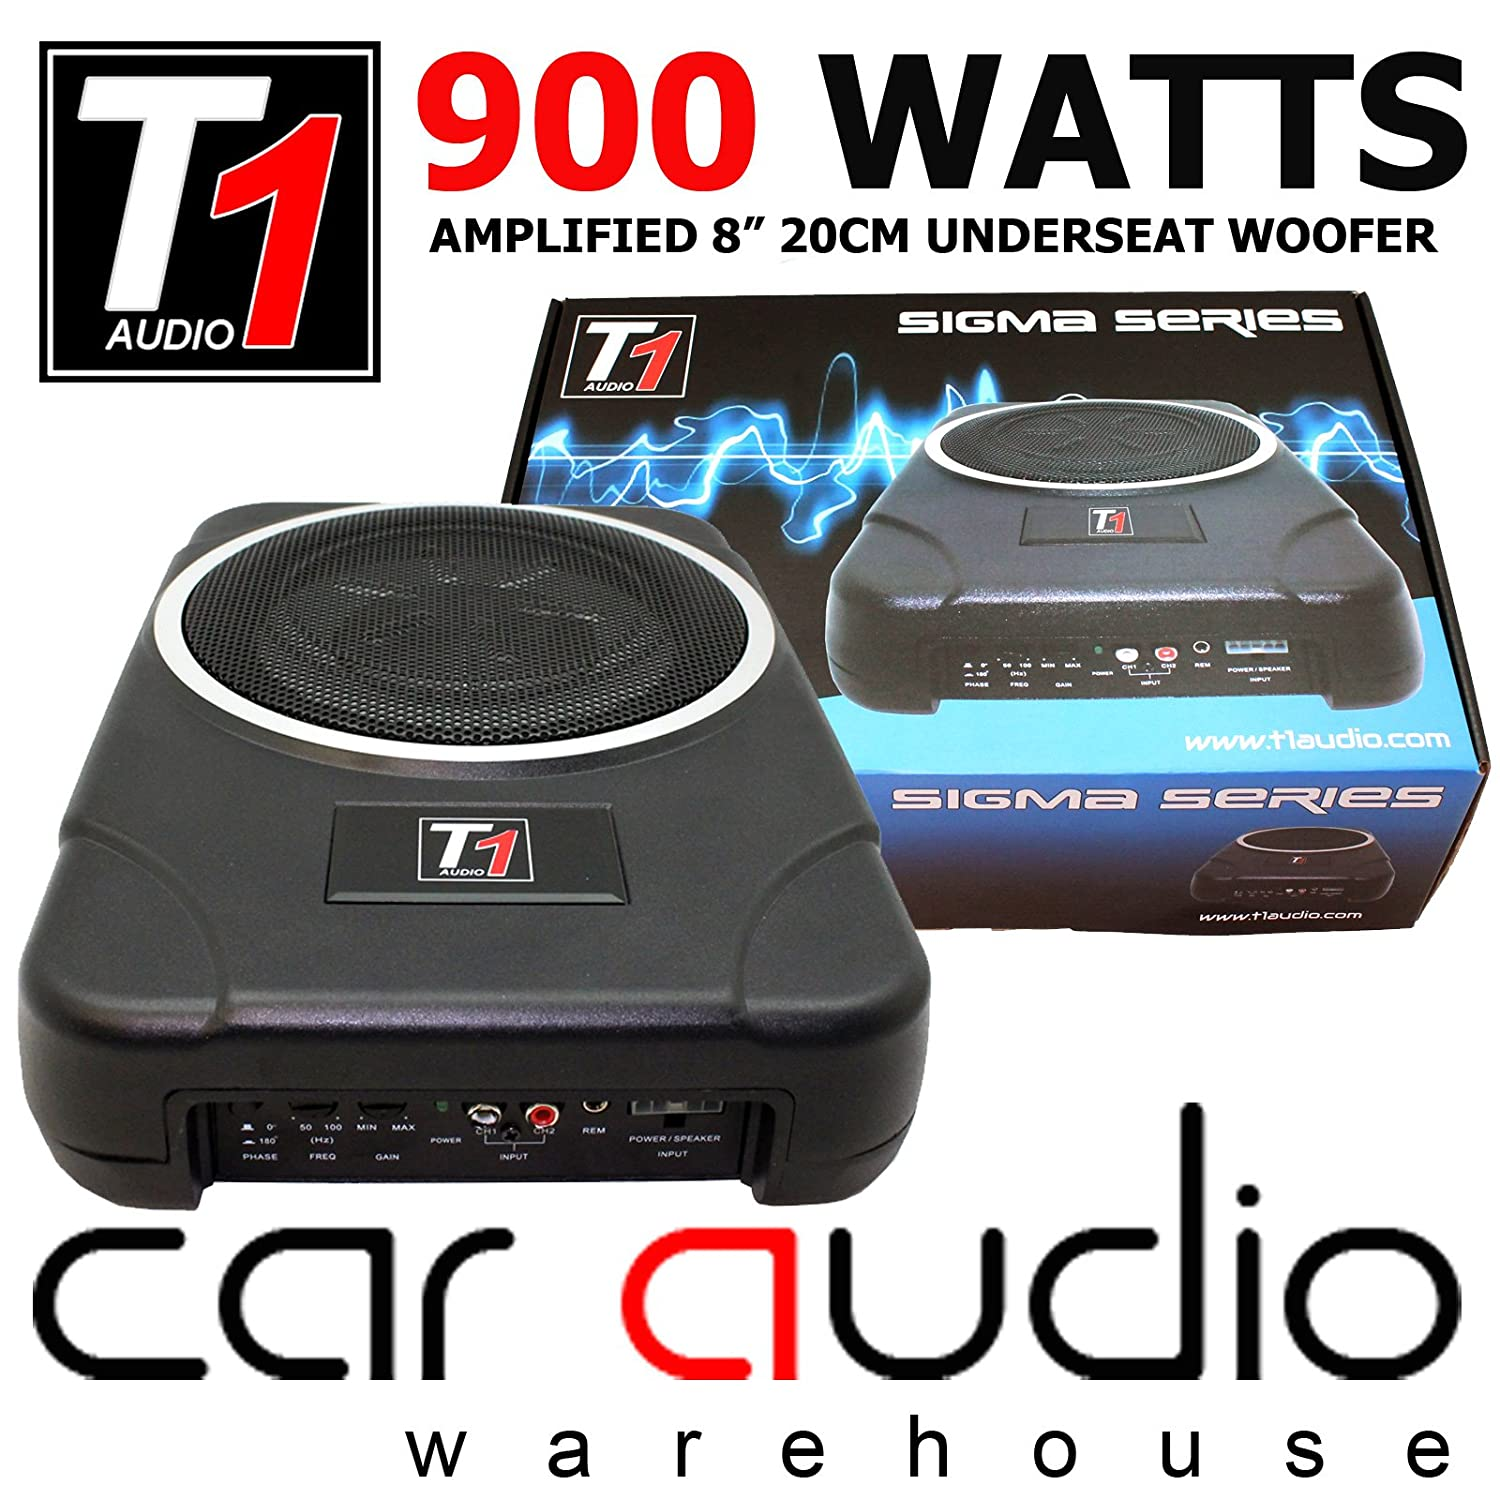 T1 audio 8 20cm 900 watts under seat active car amazon co uk electronics